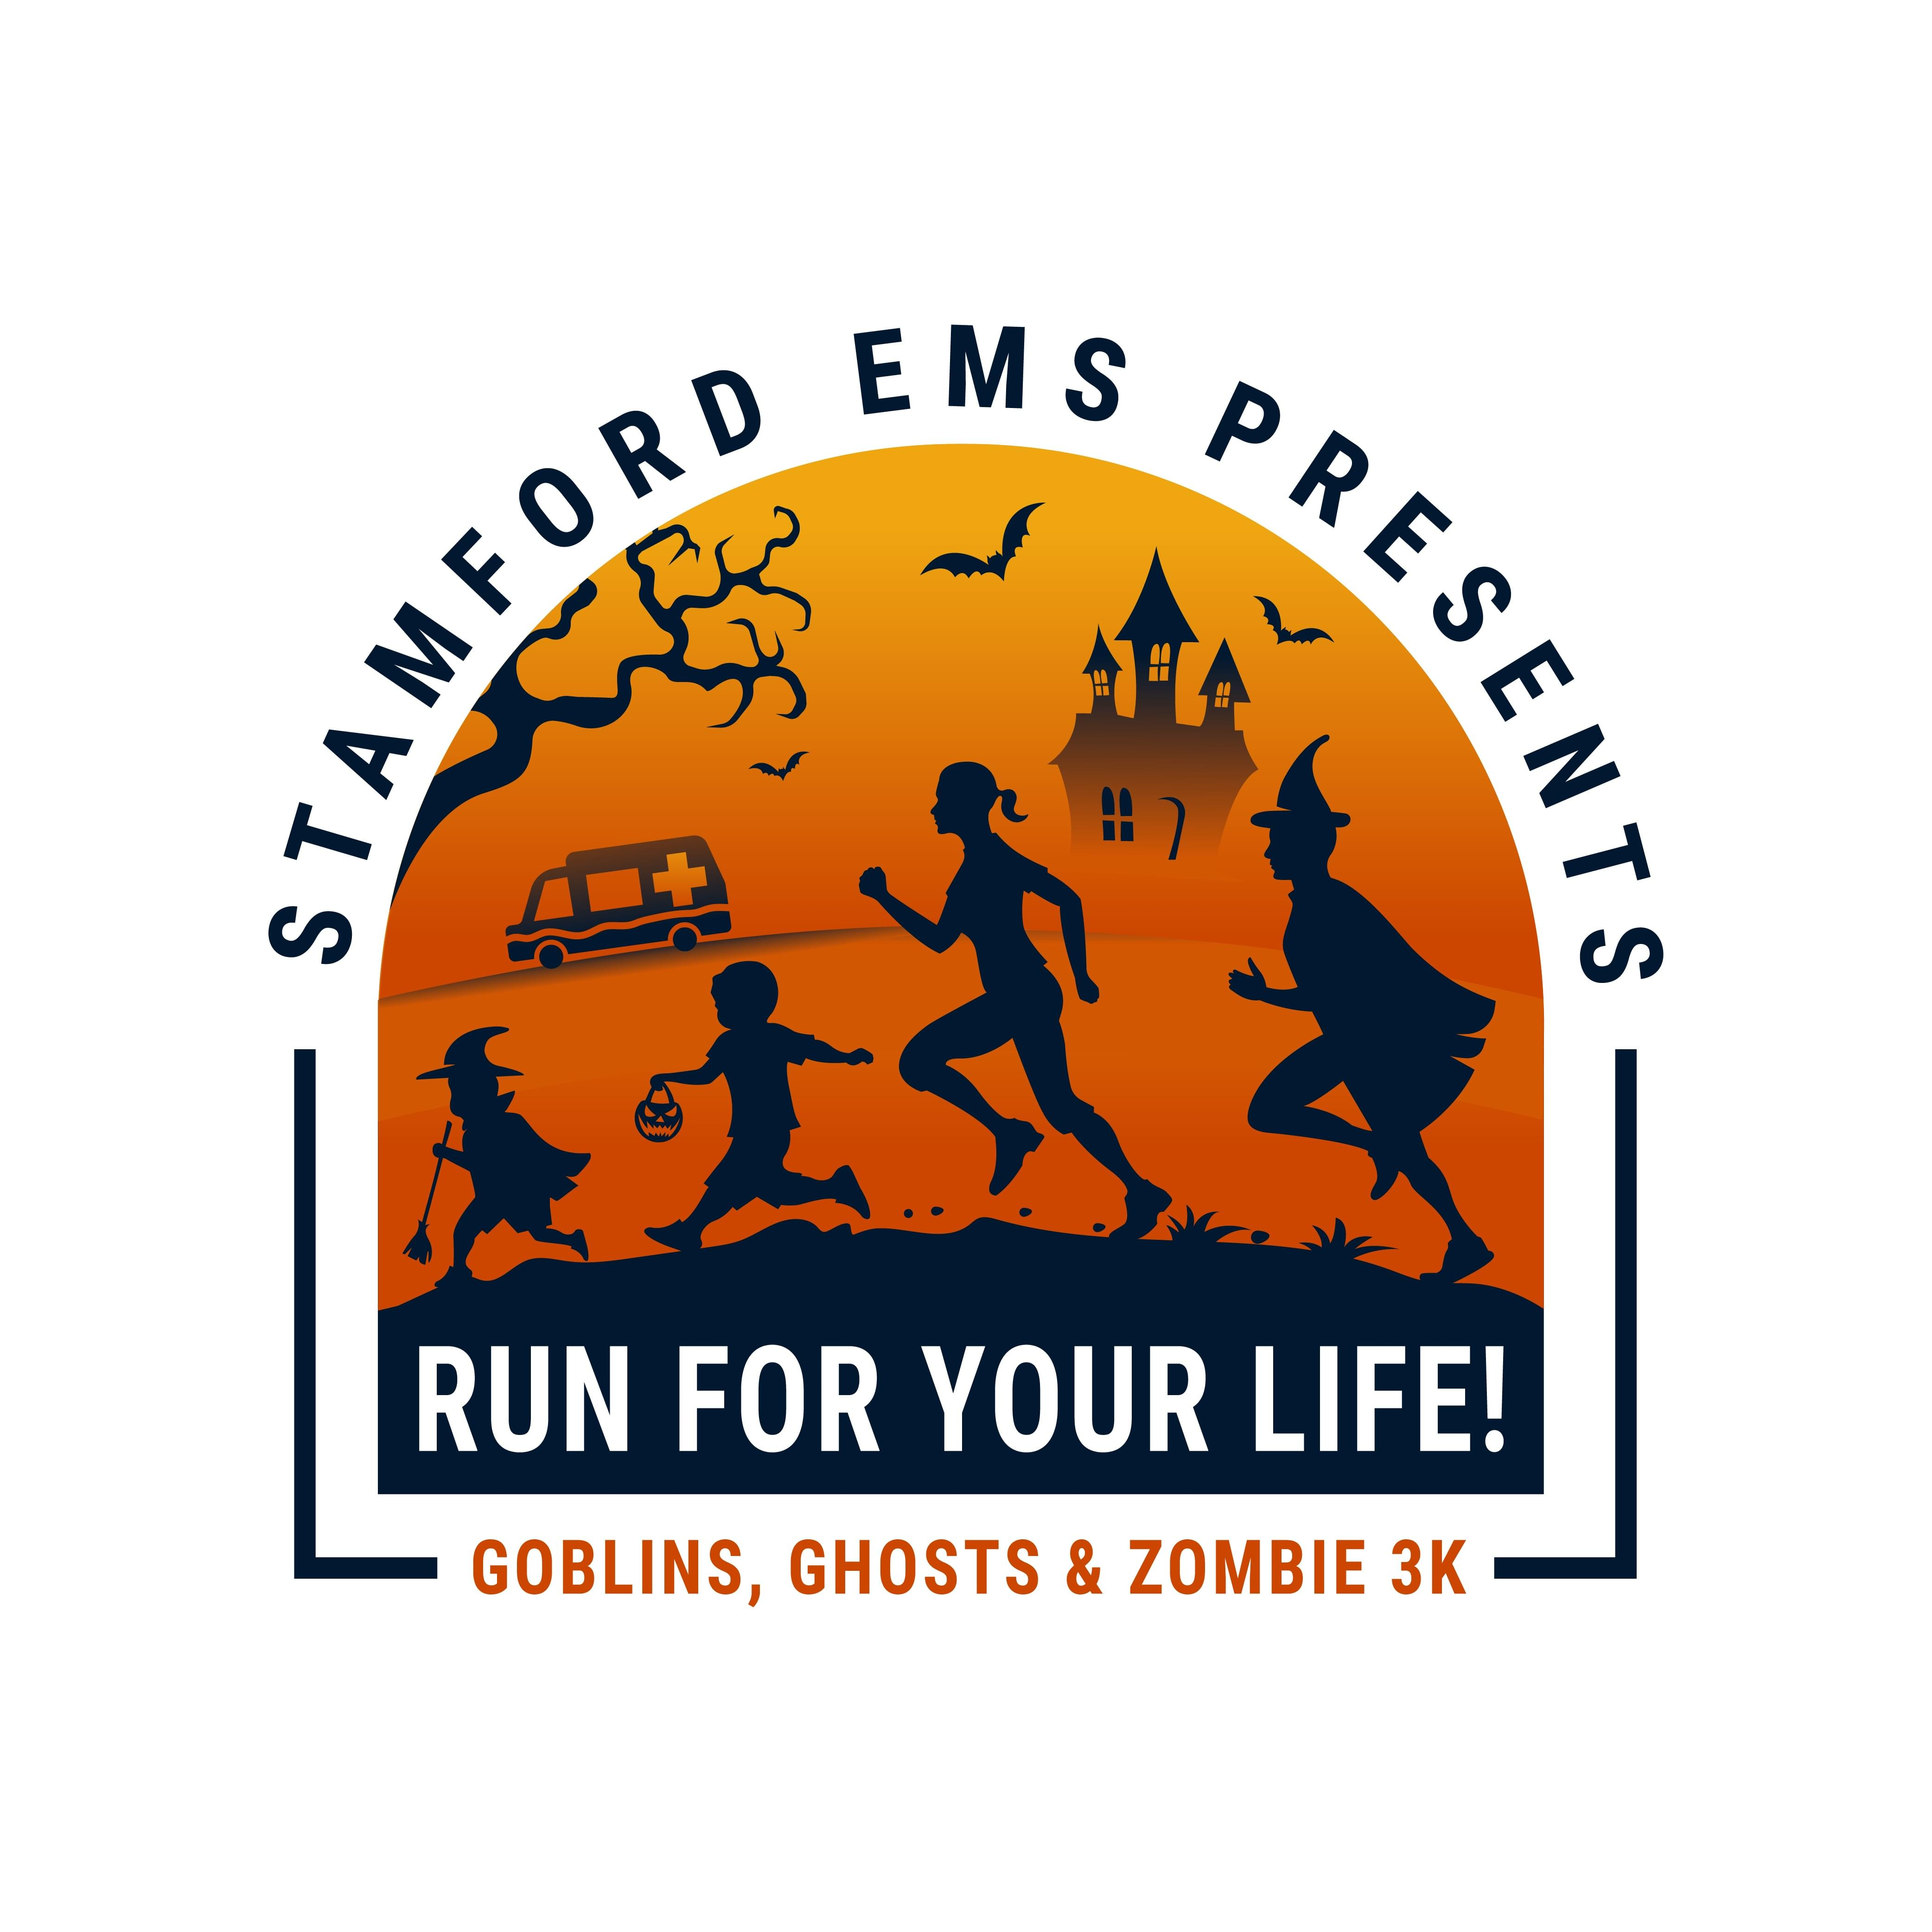 Stamford EMS Run For Your Life Goblins, Ghosts & Zombie 3K